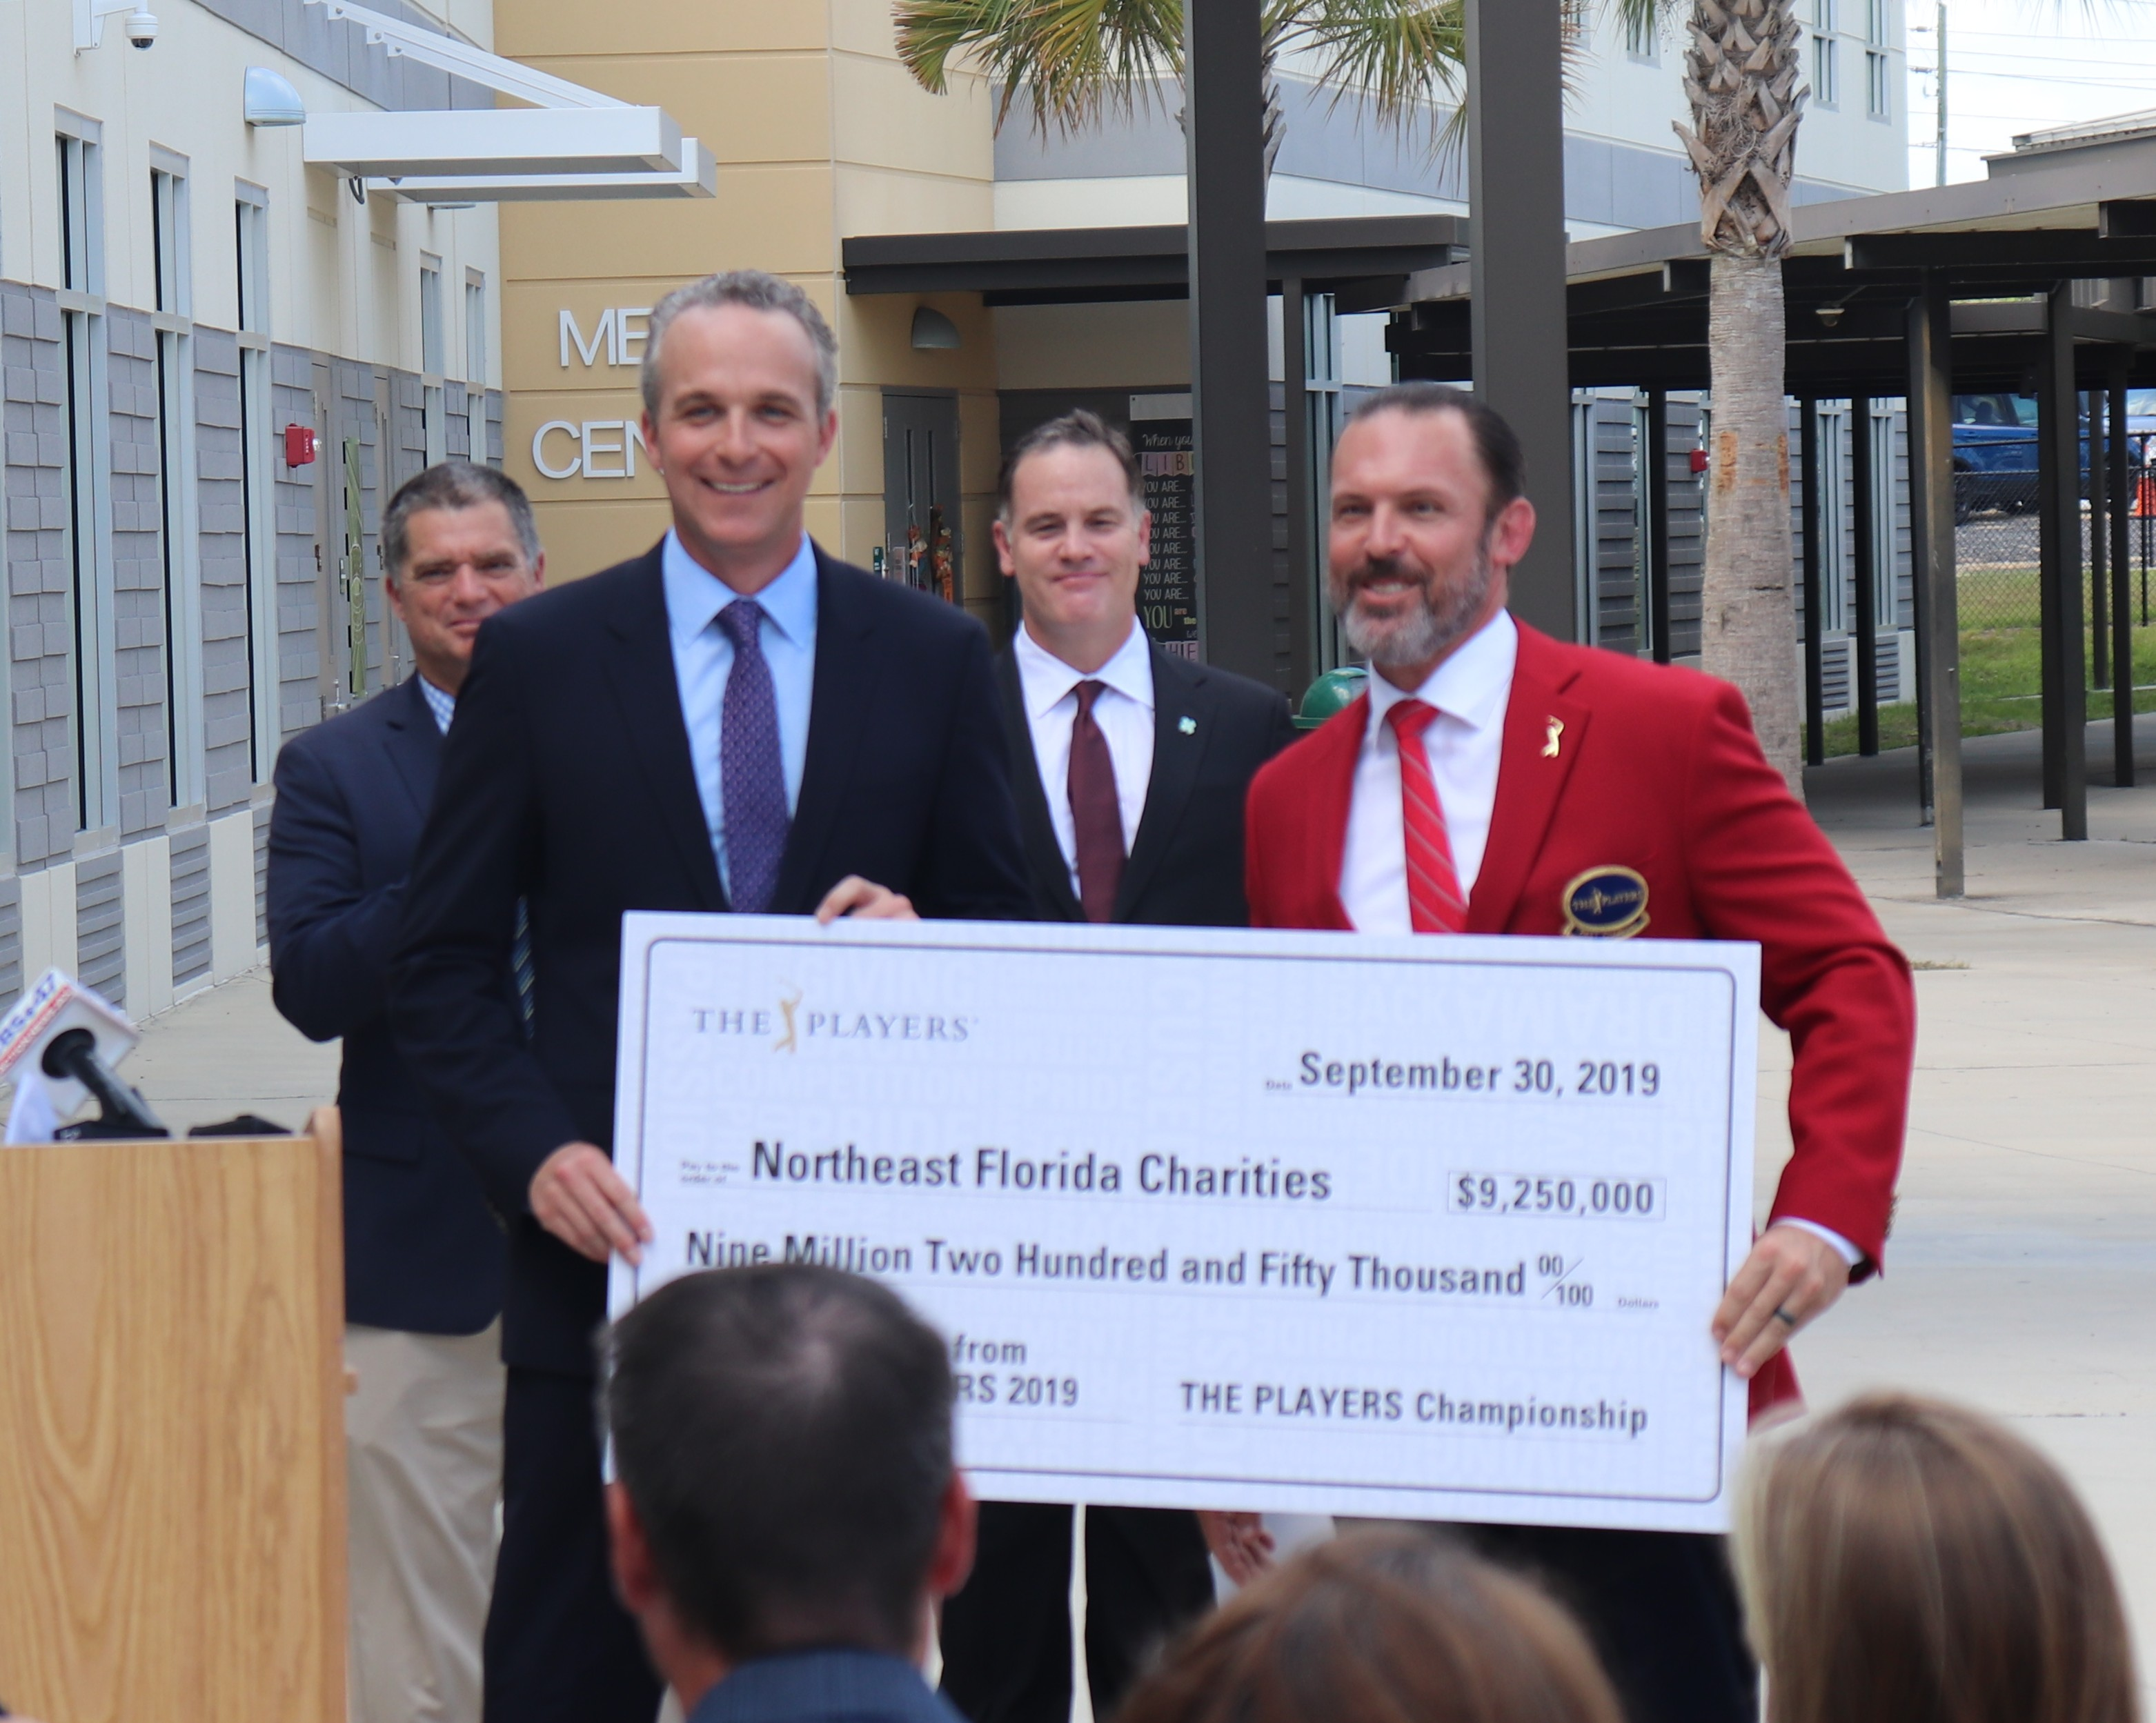 $1M Gift From THE PLAYERS for New Behavioral Health Program Announced at Nease